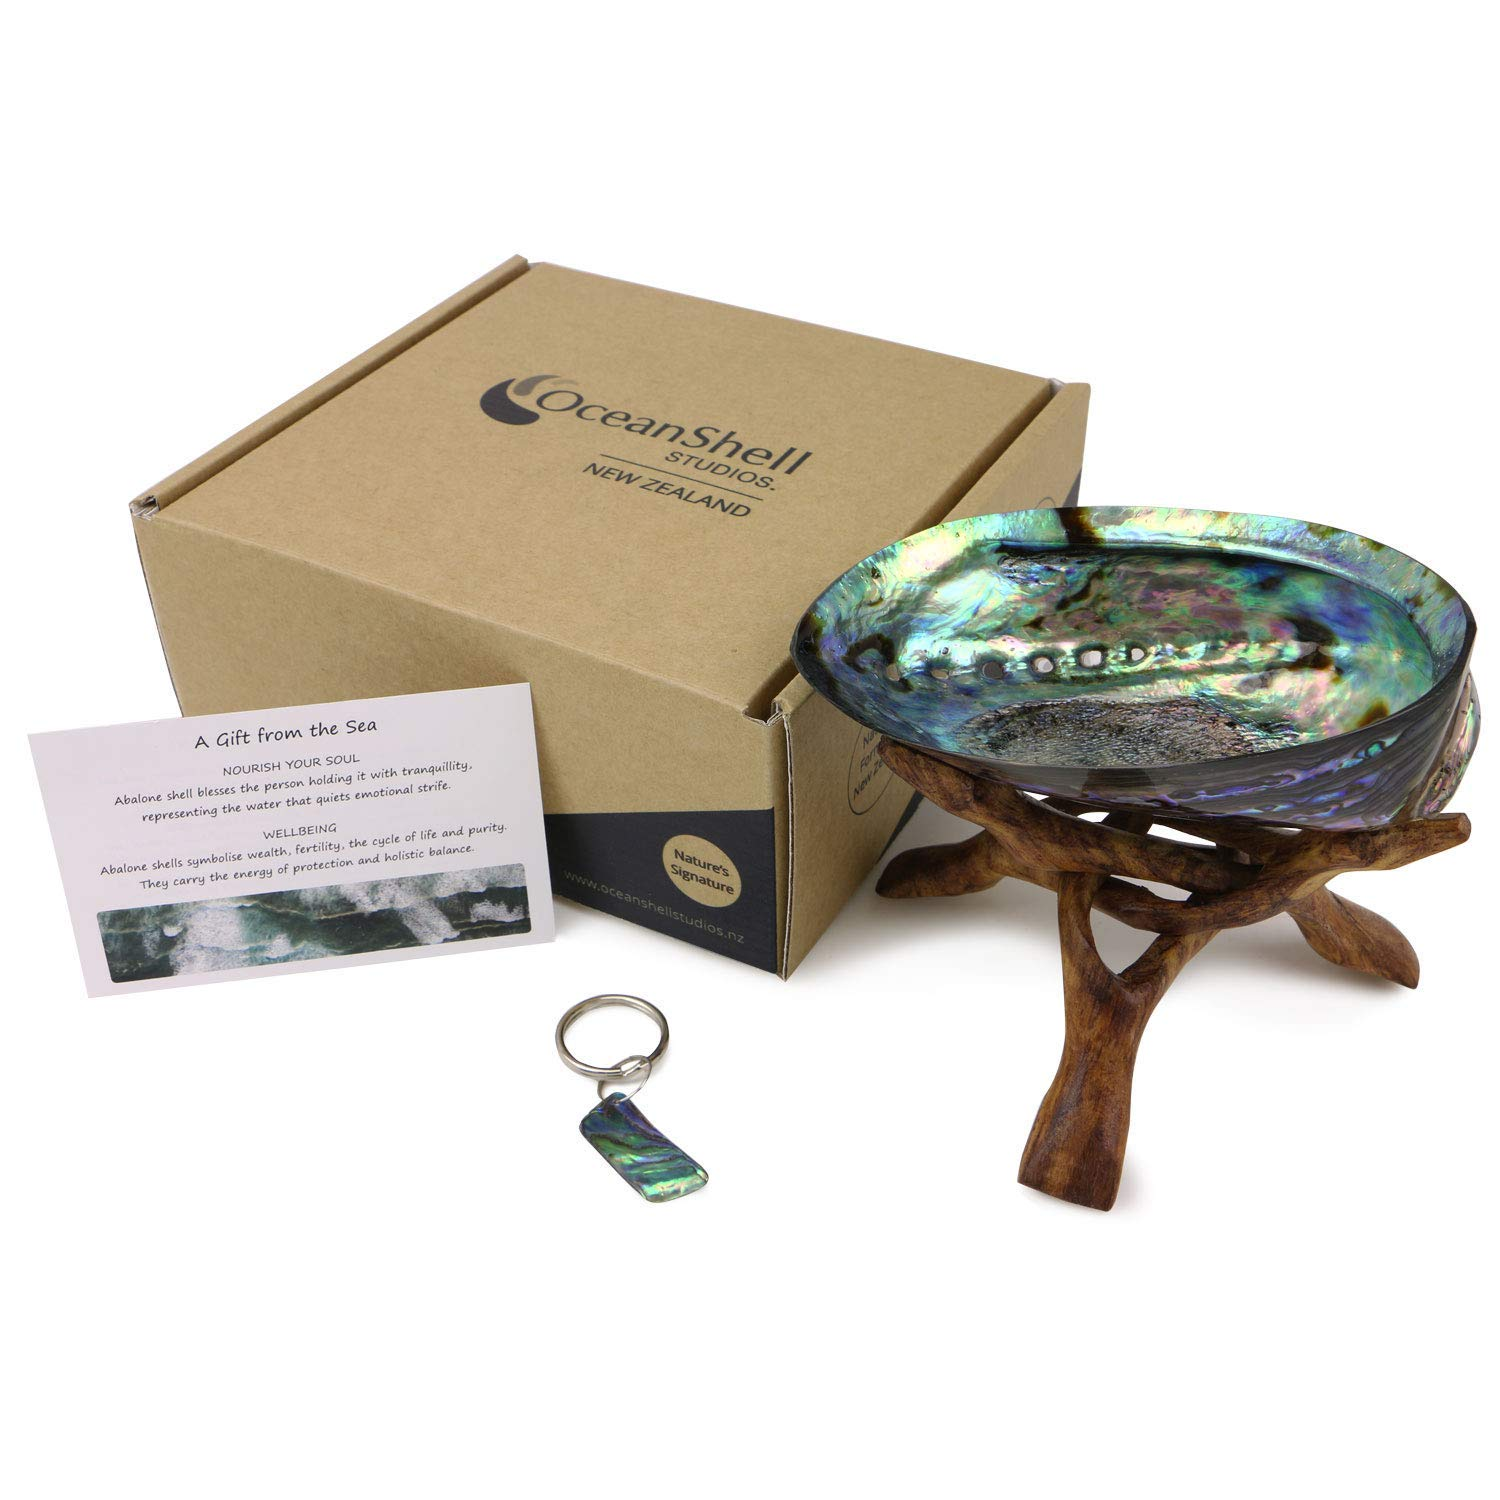 Ocean Shell Studios, 100% Natural New Zealand Premium Polished Abalone Shell with Wooden Tripod Stand, Sustainably Sourced Luméa Pāua, Hand Selected, Large Abalone Shell for Smudging, Home Decor.